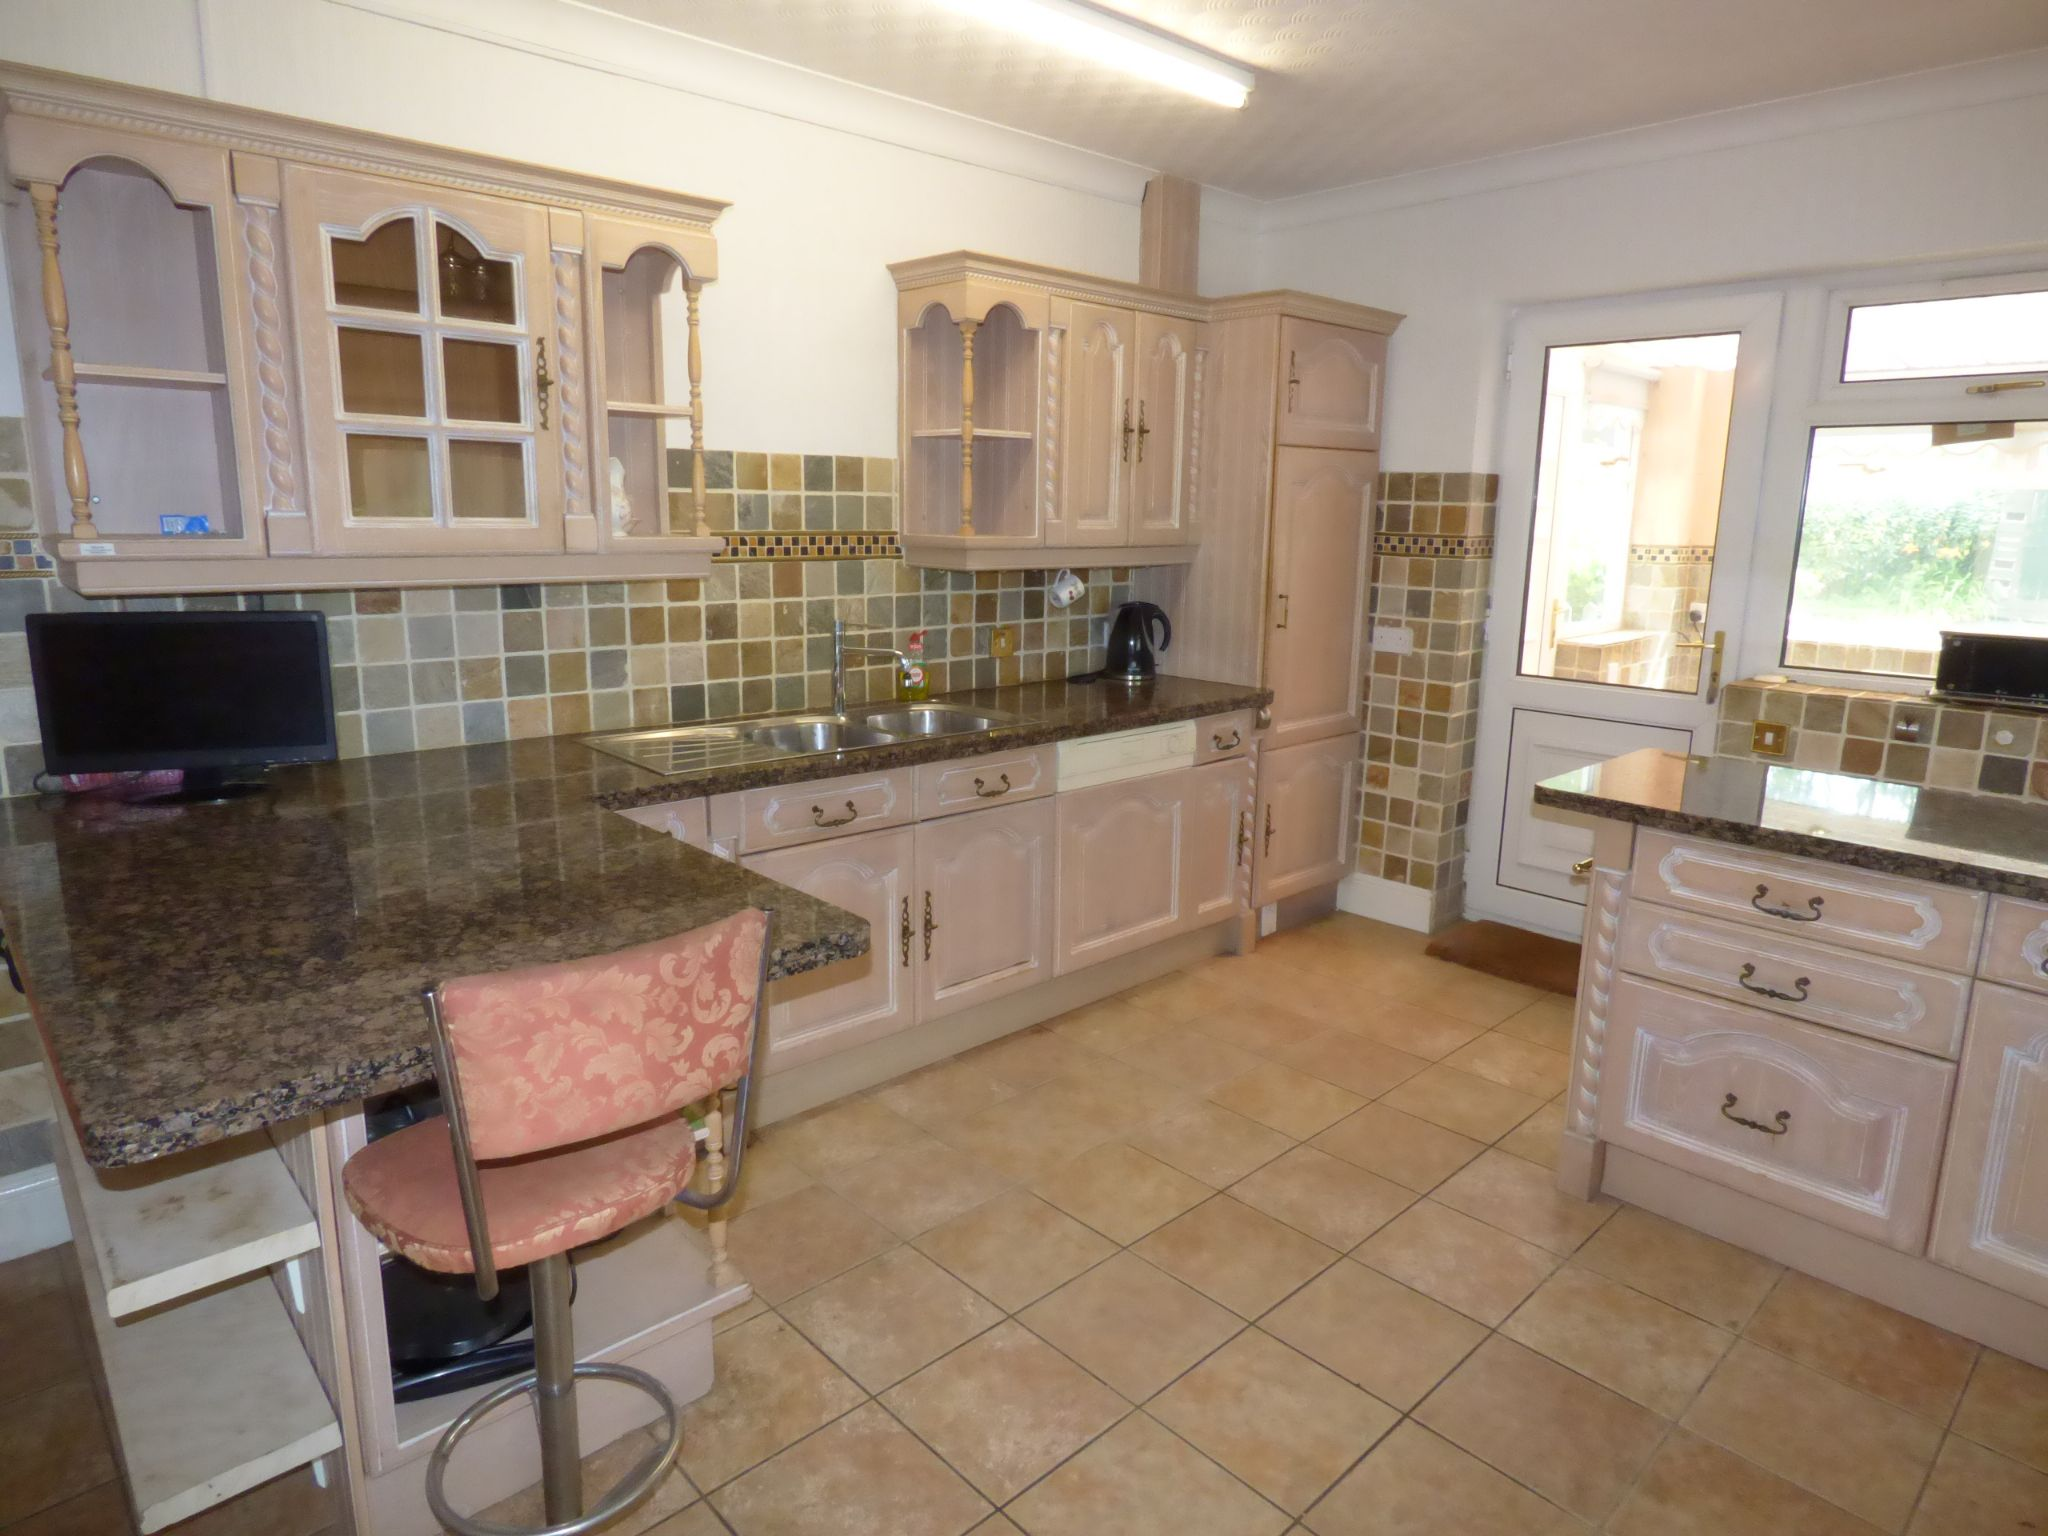 3 Bedroom Detached Bungalow For Sale - Photograph 13